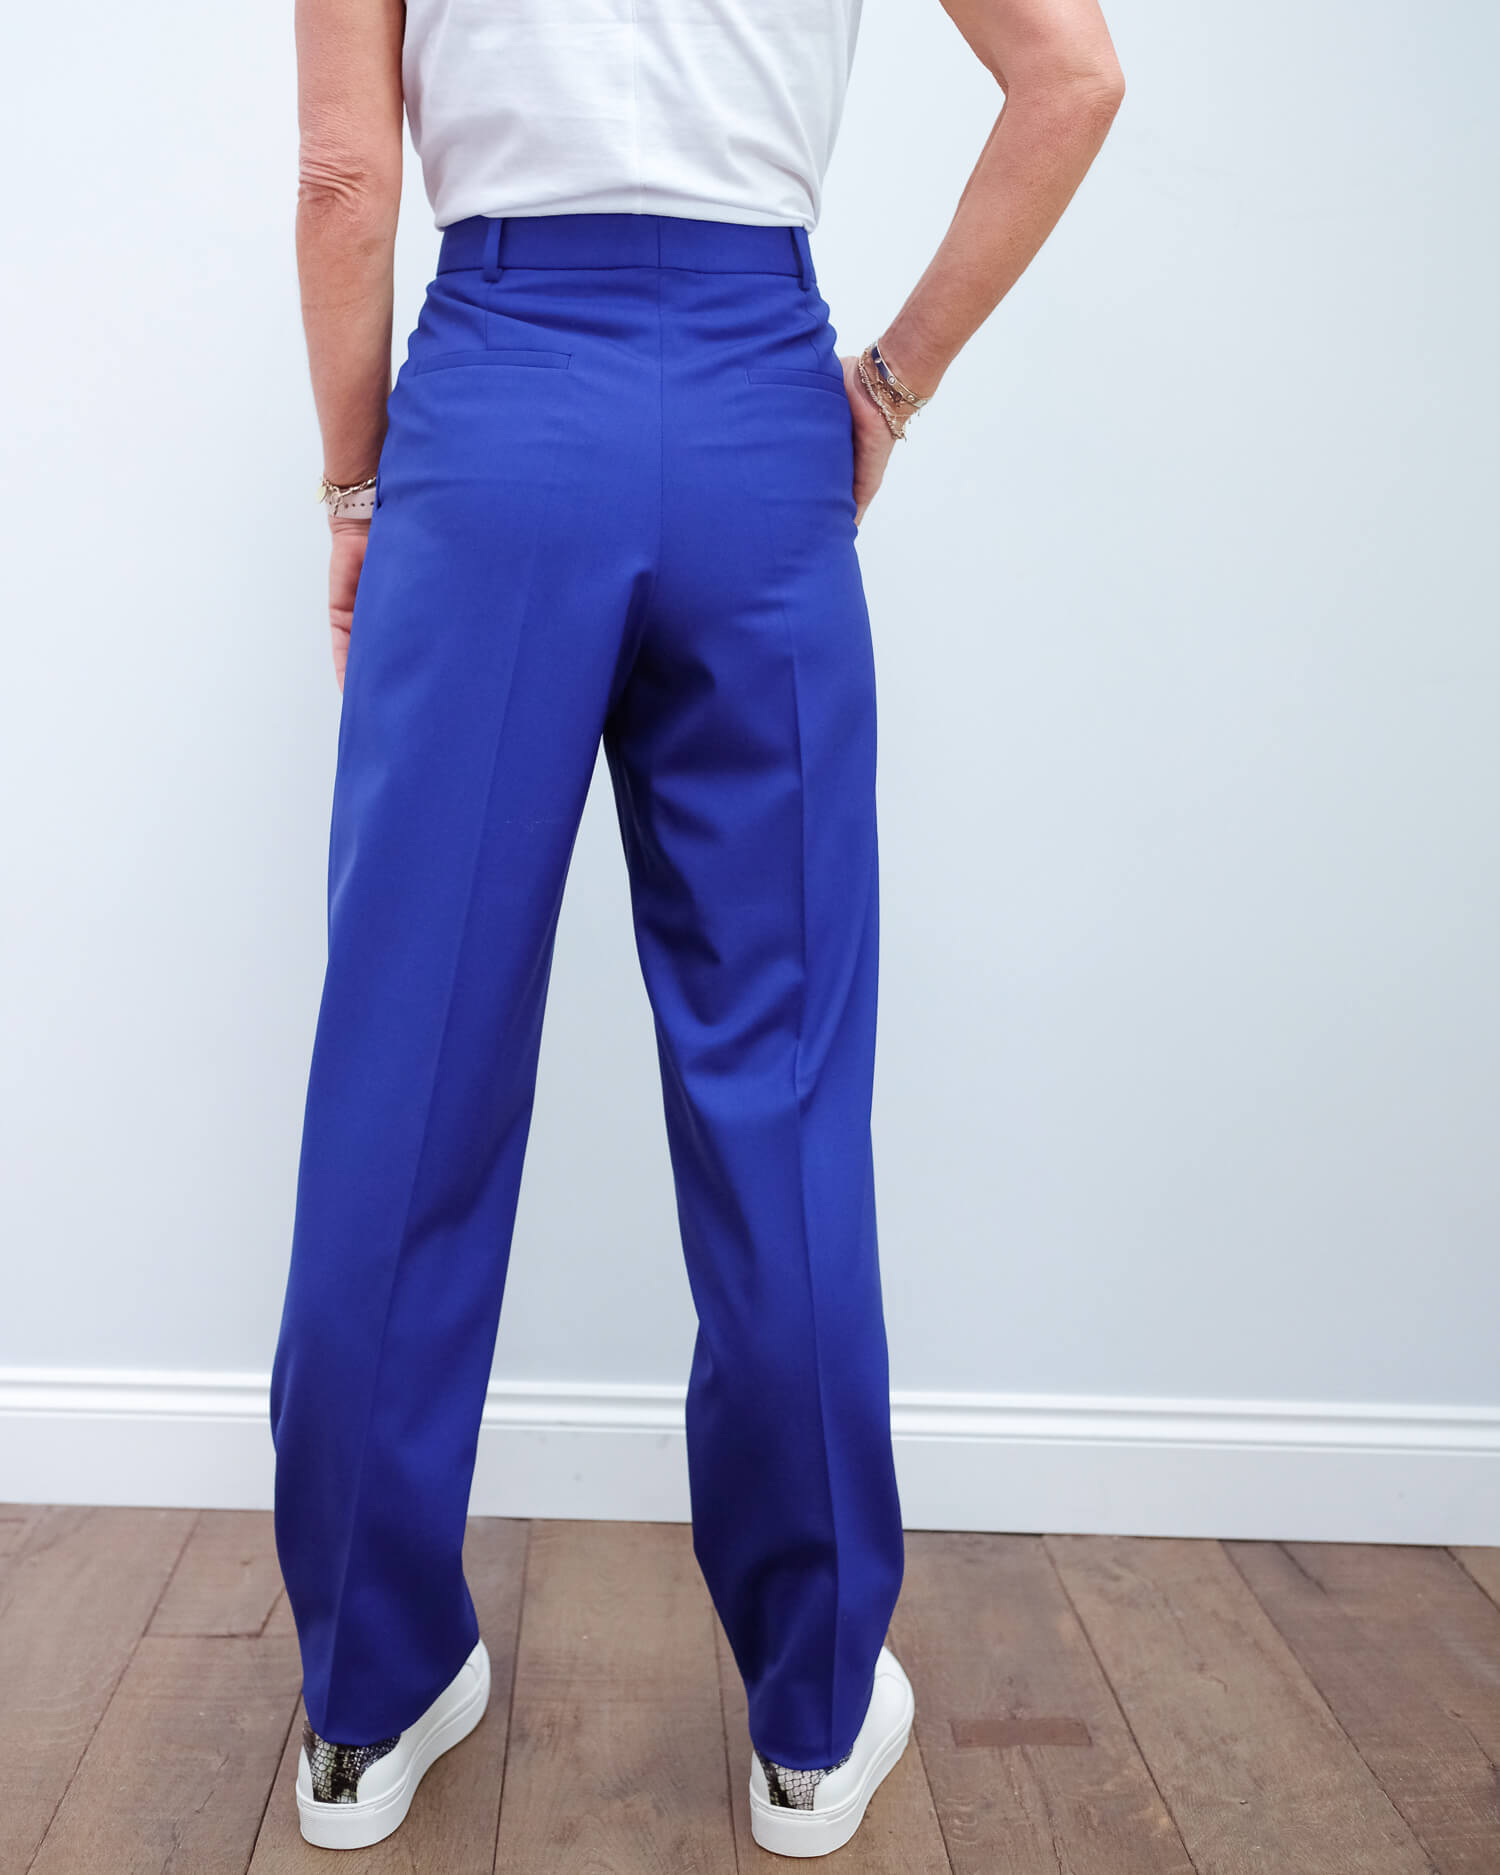 JOSEPH Fender trousers in klein